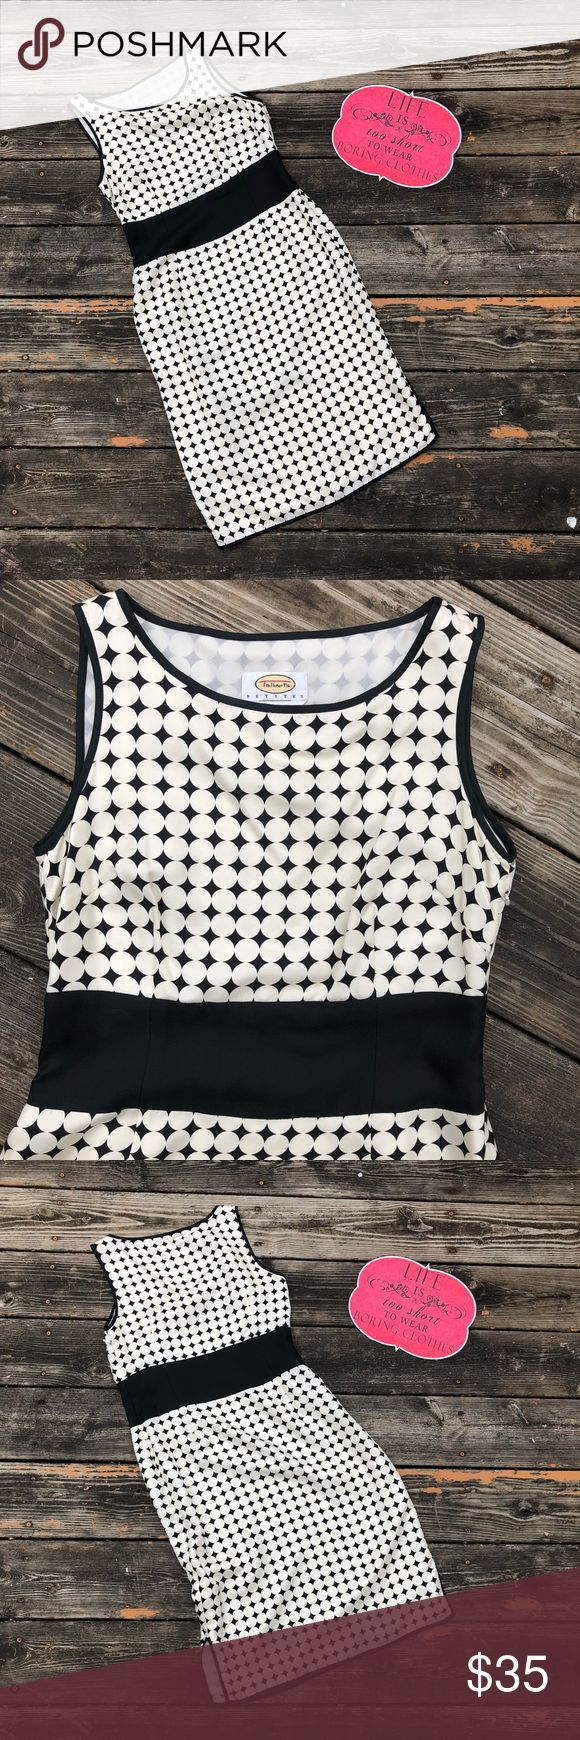 NWOT 100% Silk Polka Dot Talbots Petite Dress This dress is just amazing! Simple cut and trendy polka dots all in a 100% silk fabric makes for a beautiful dress. A must have piece for sure! Talbots Dresses Midi